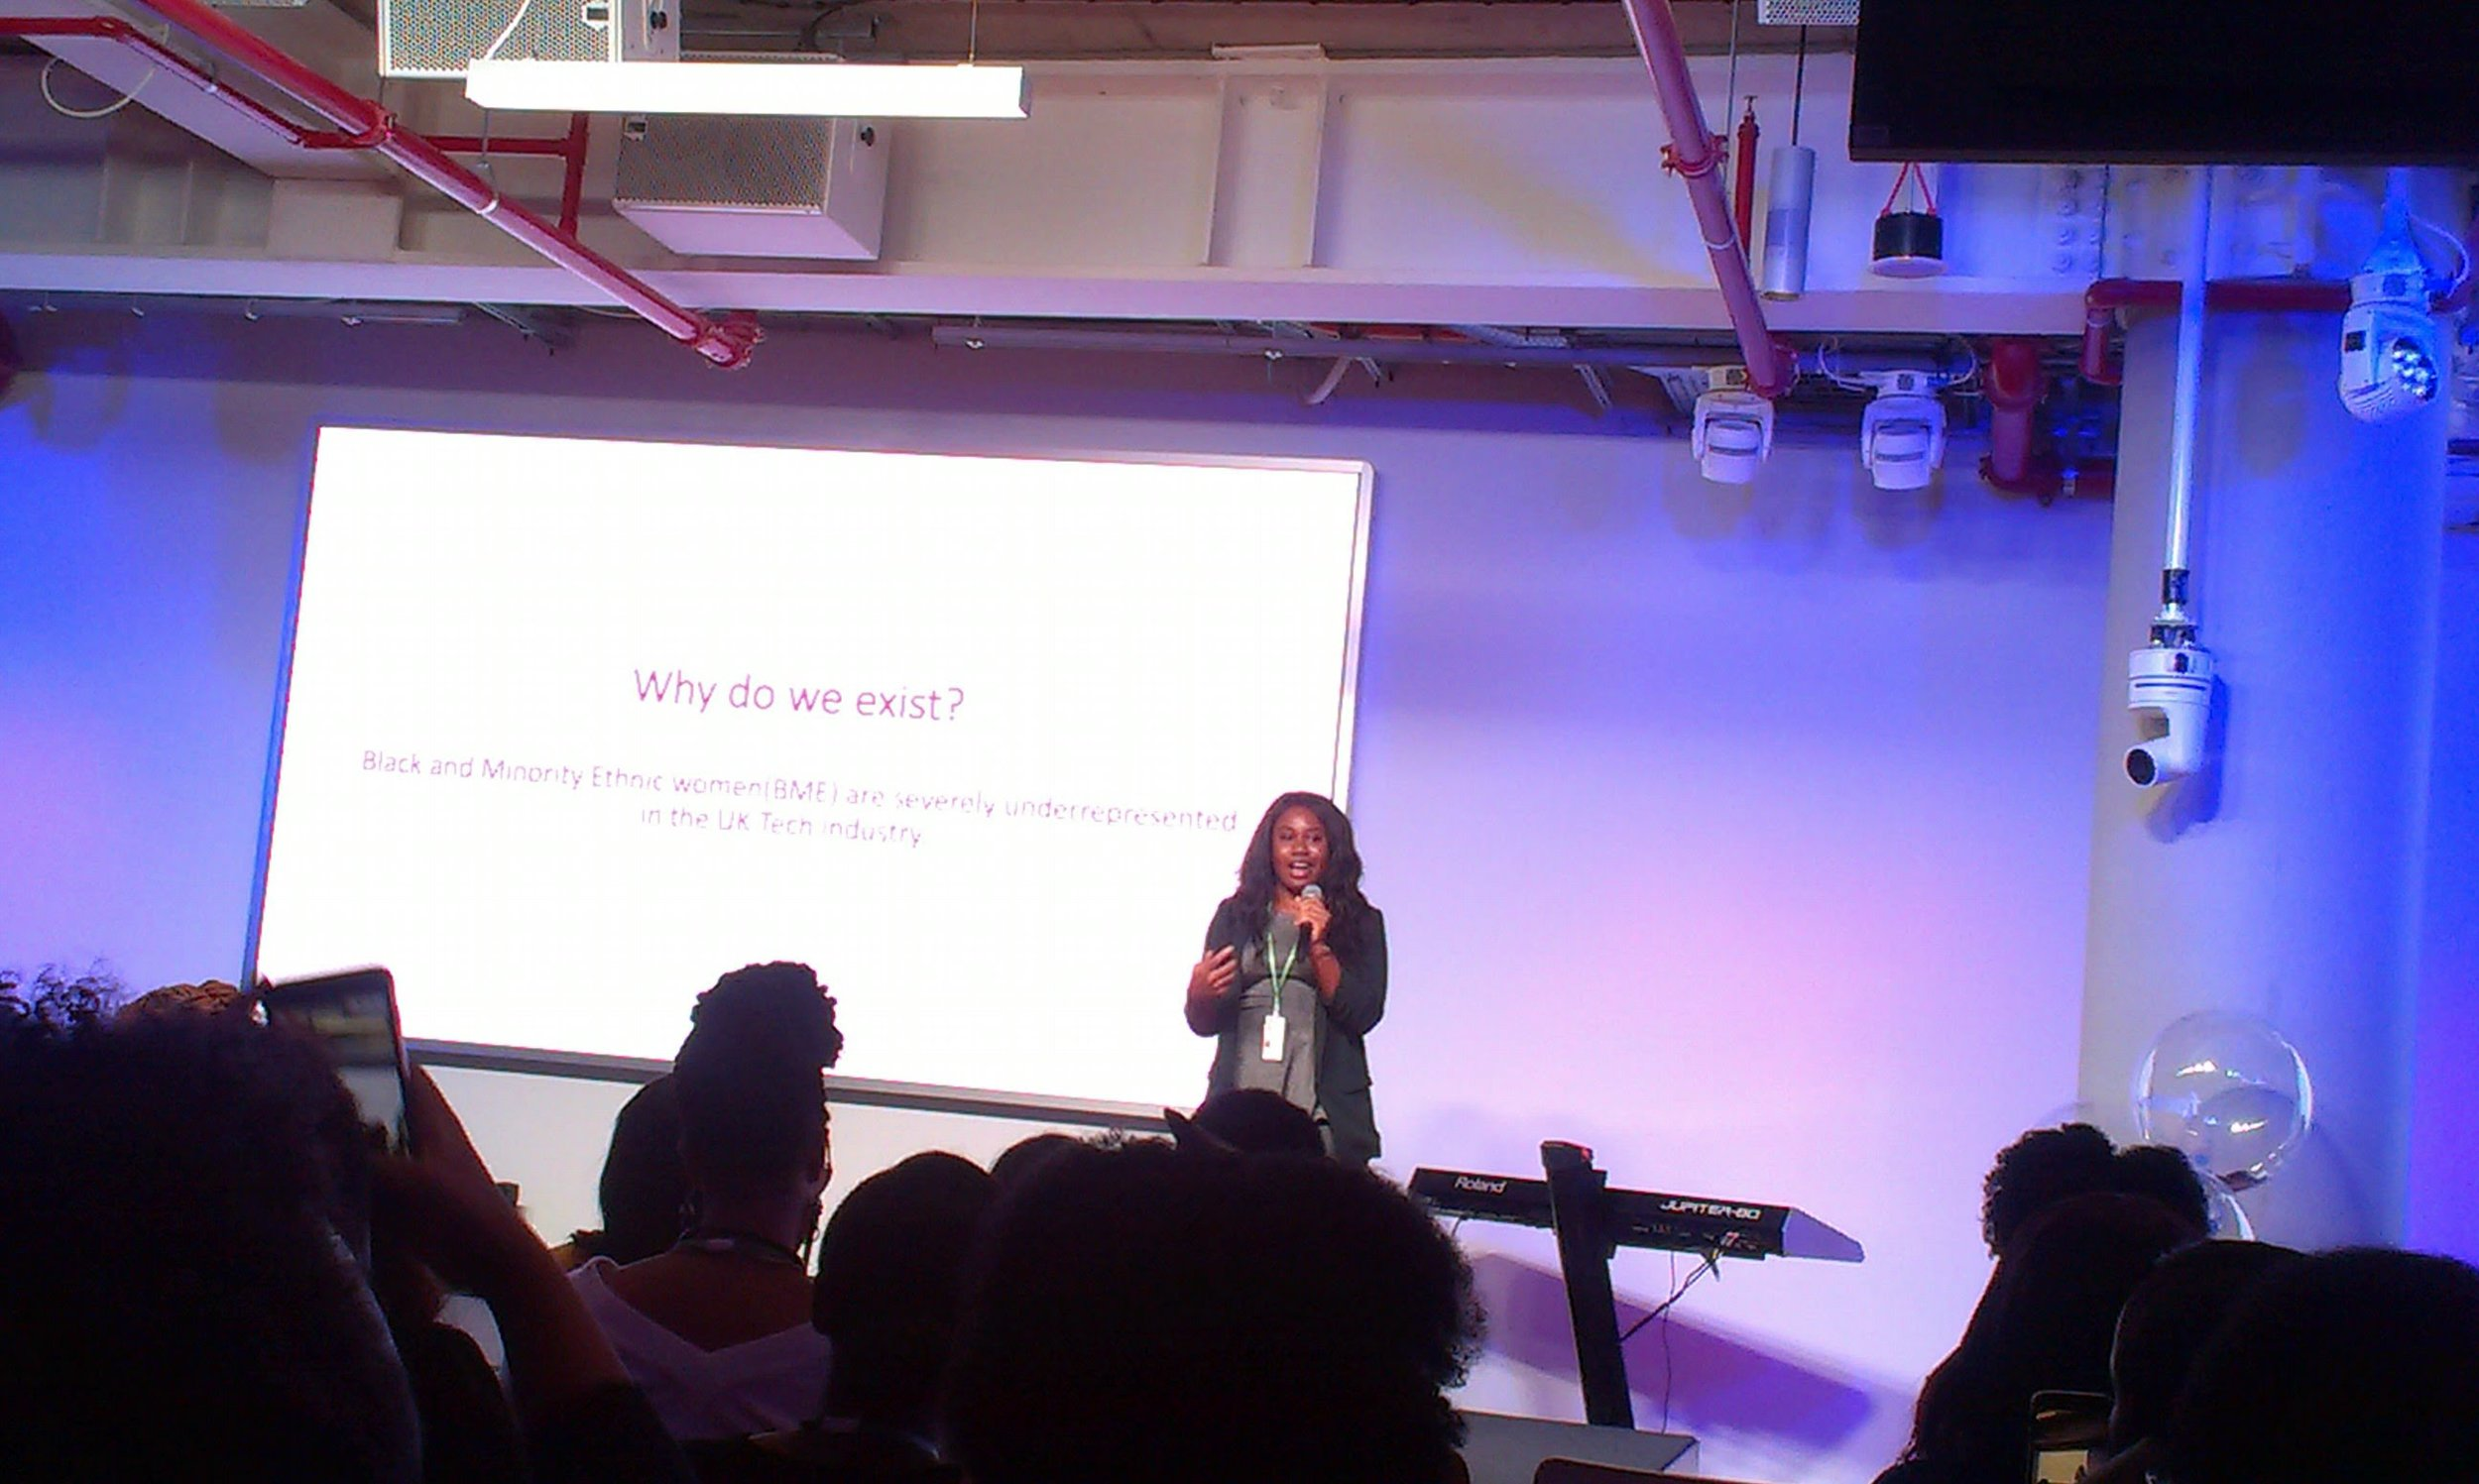 Facebook - The Witty Careers story at Facebook UK's Black History Month celebration. Watch the full presentation here: https://www.youtube.com/watch?v=p_7aU19GCUA